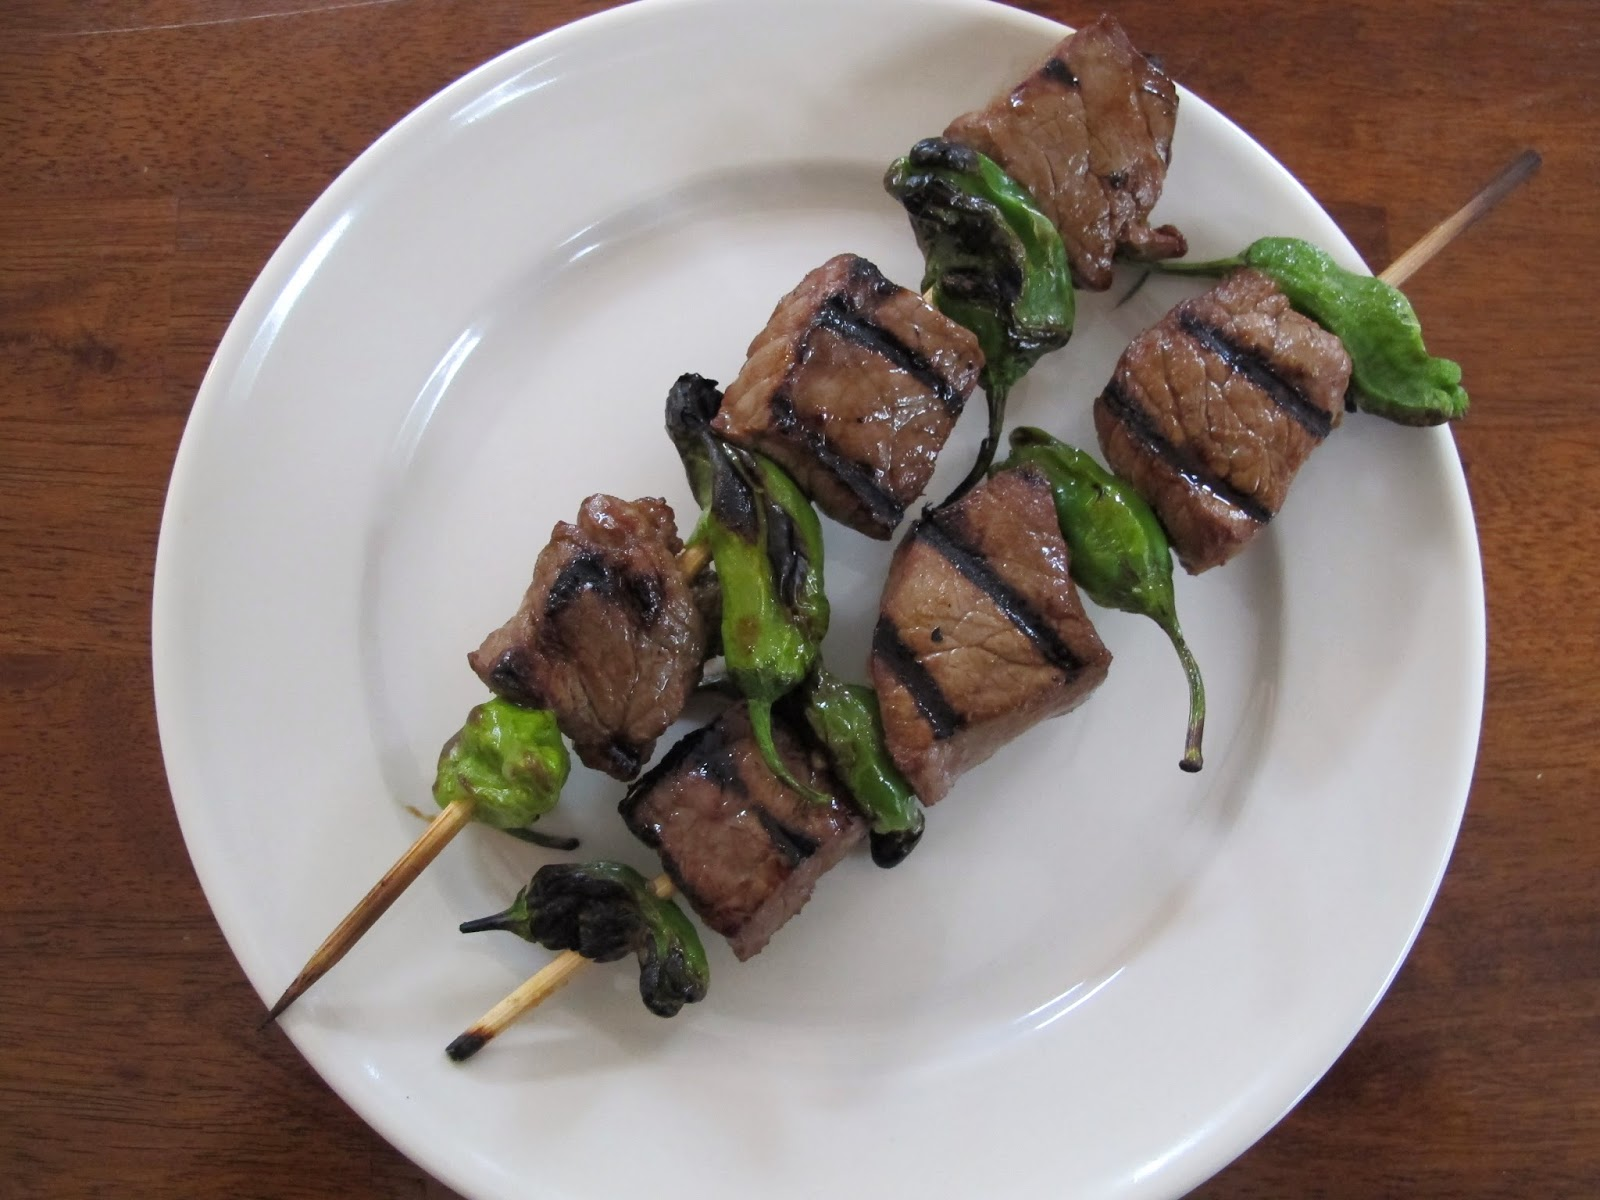 Grilled Steak and Shishito Pepper Skewers